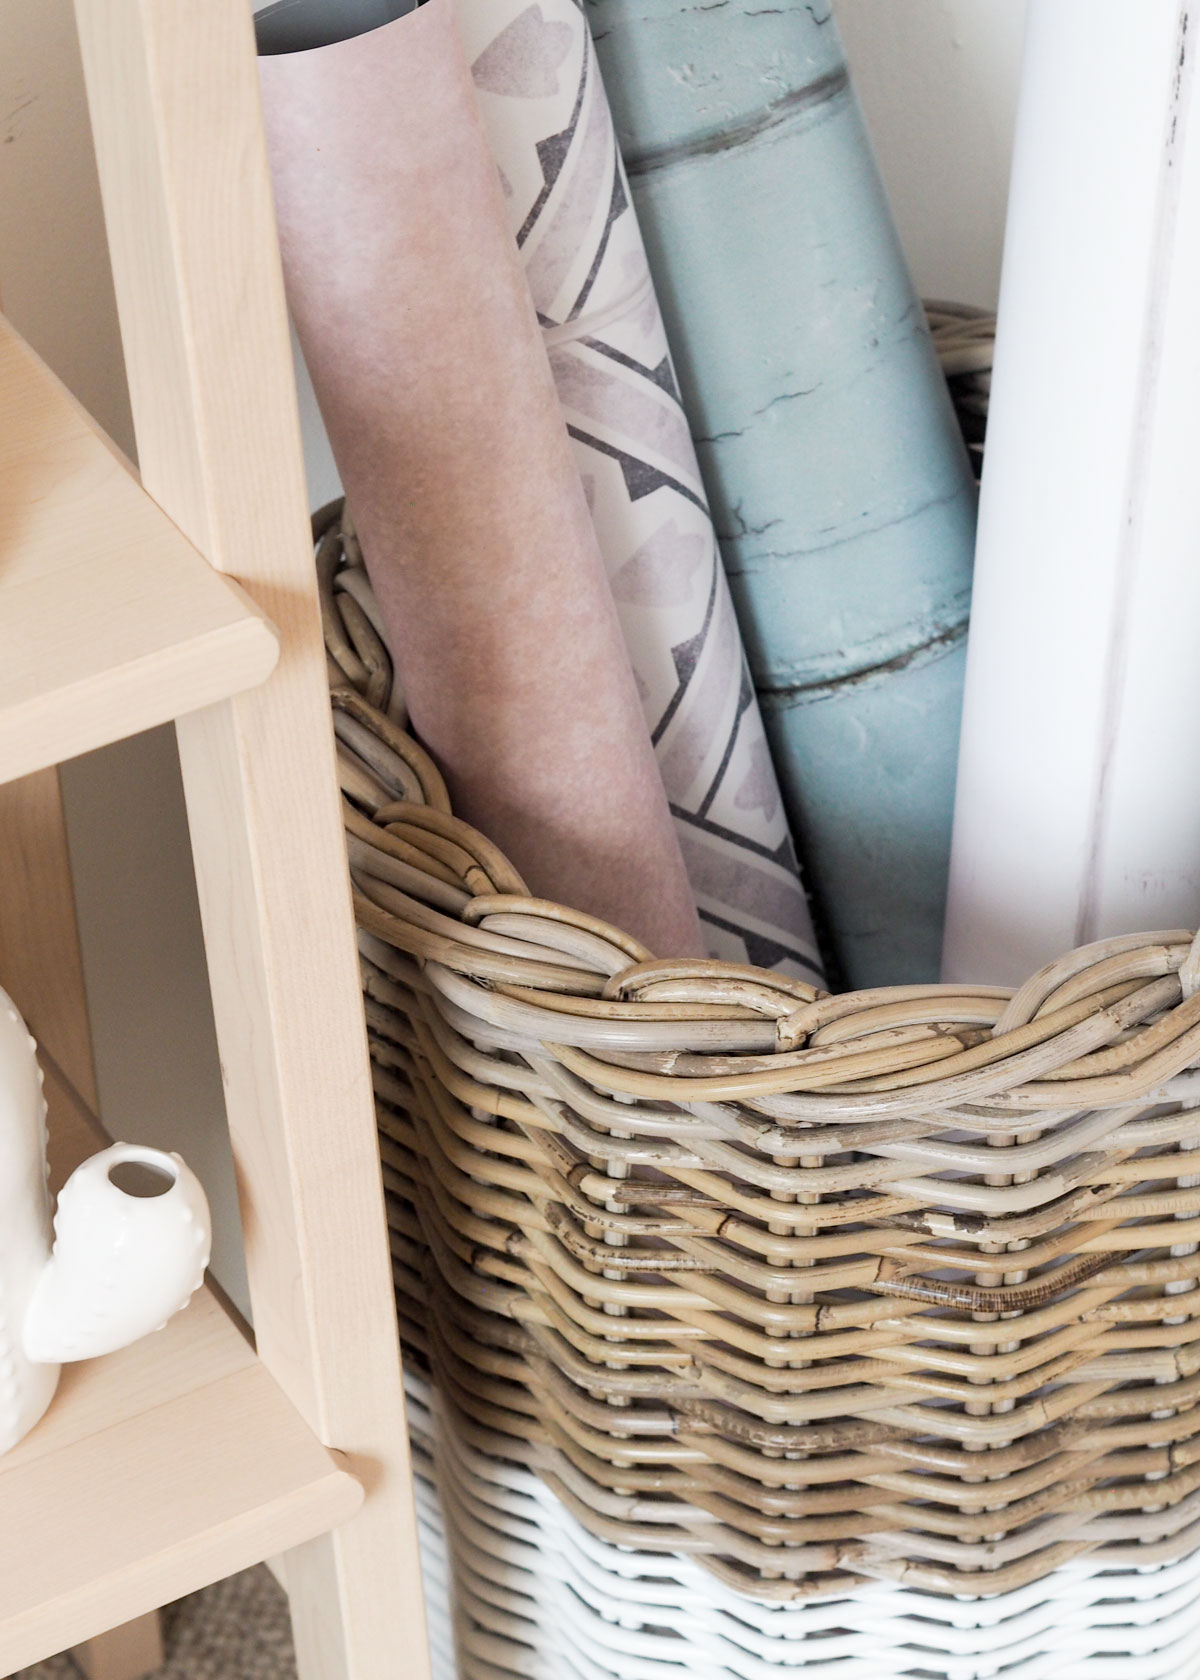 Today I'm sharing how I use rattan storage baskets in my home to keep it looking organised and stylish in partnership with The Basket Company